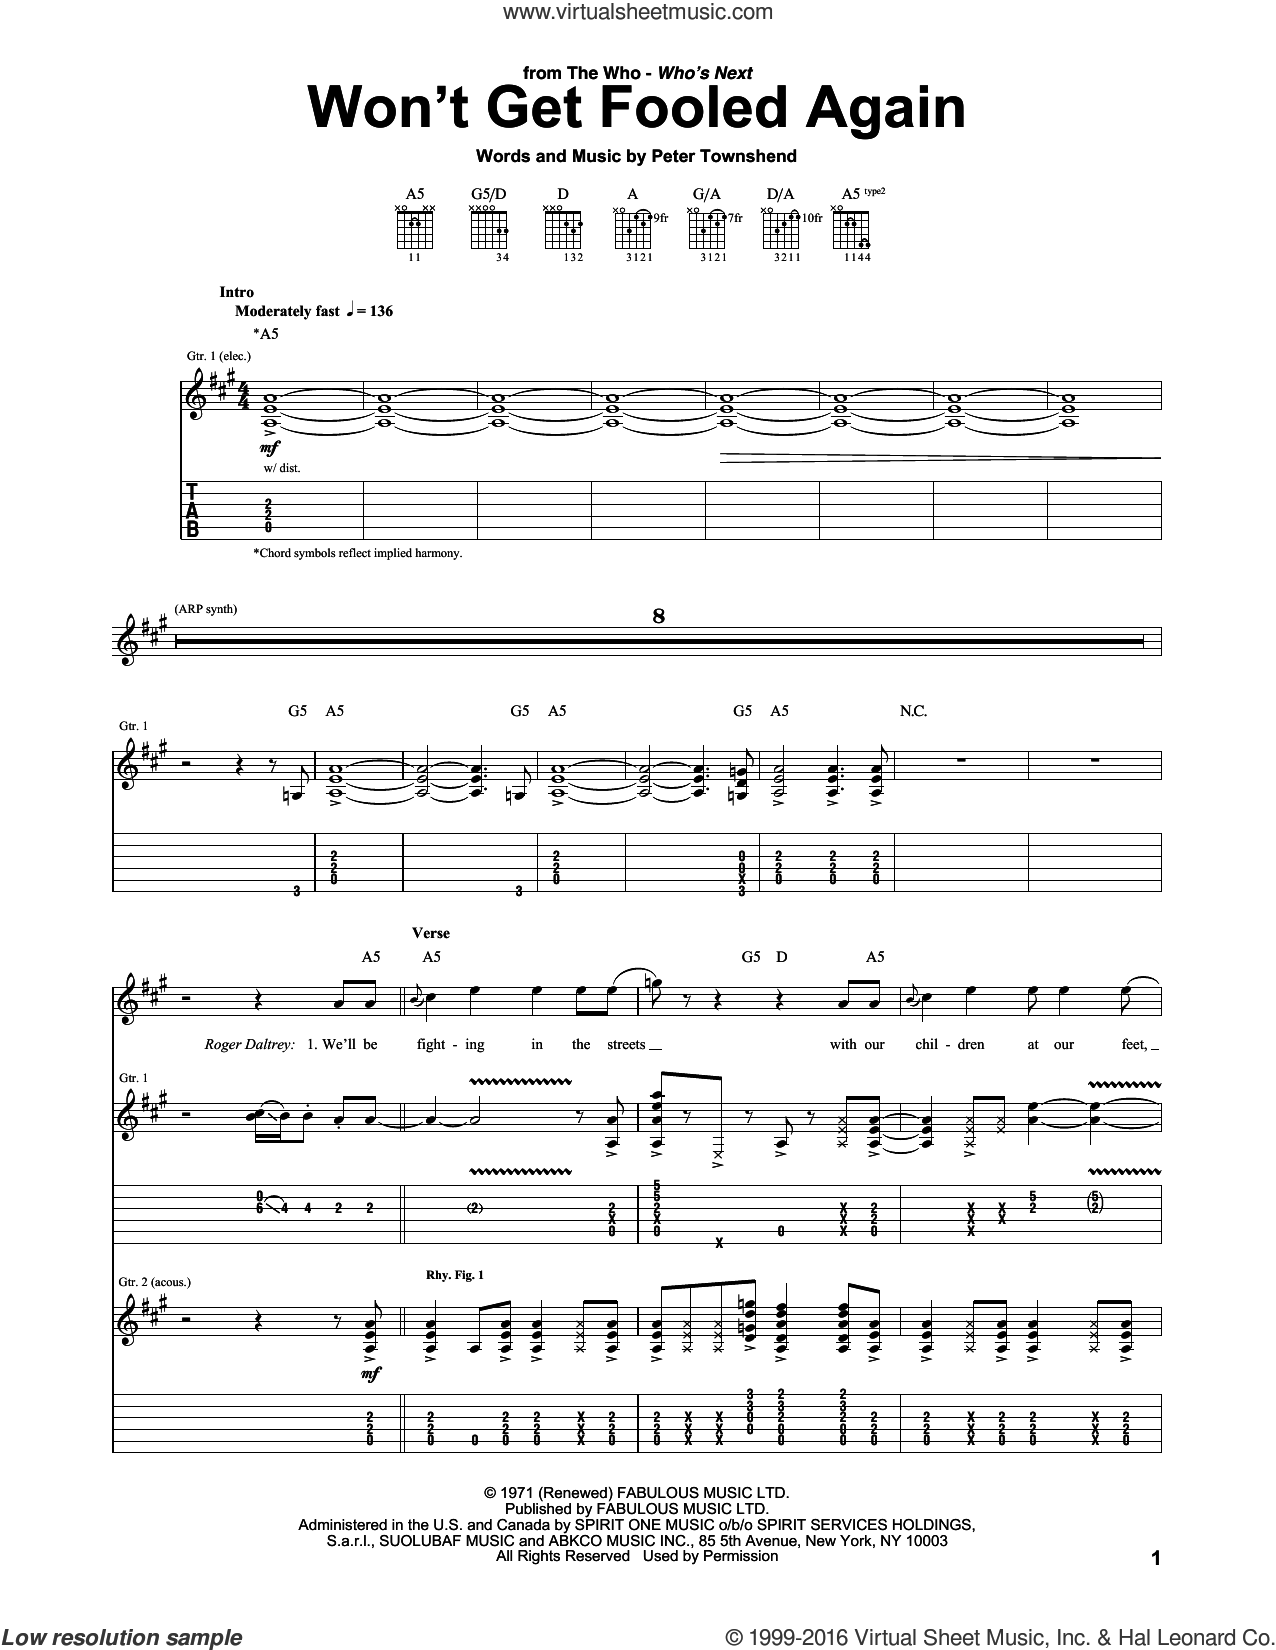 Won't Get Fooled Again sheet music for guitar (tablature) by The Who, intermediate skill level